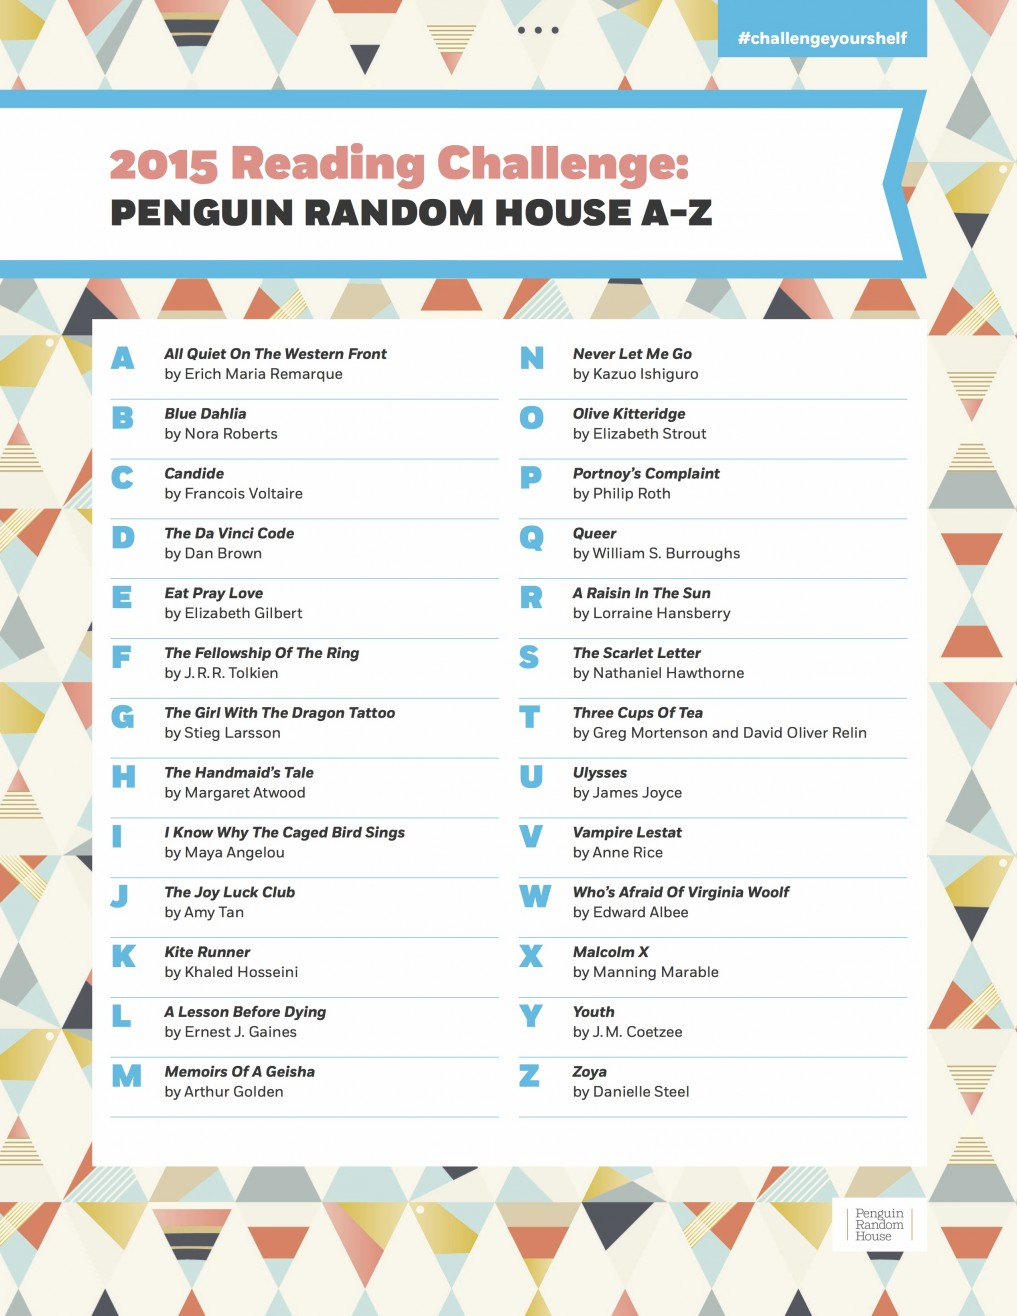 readingchallenge-2015-penguinrandomhouse-AtoZ (1)